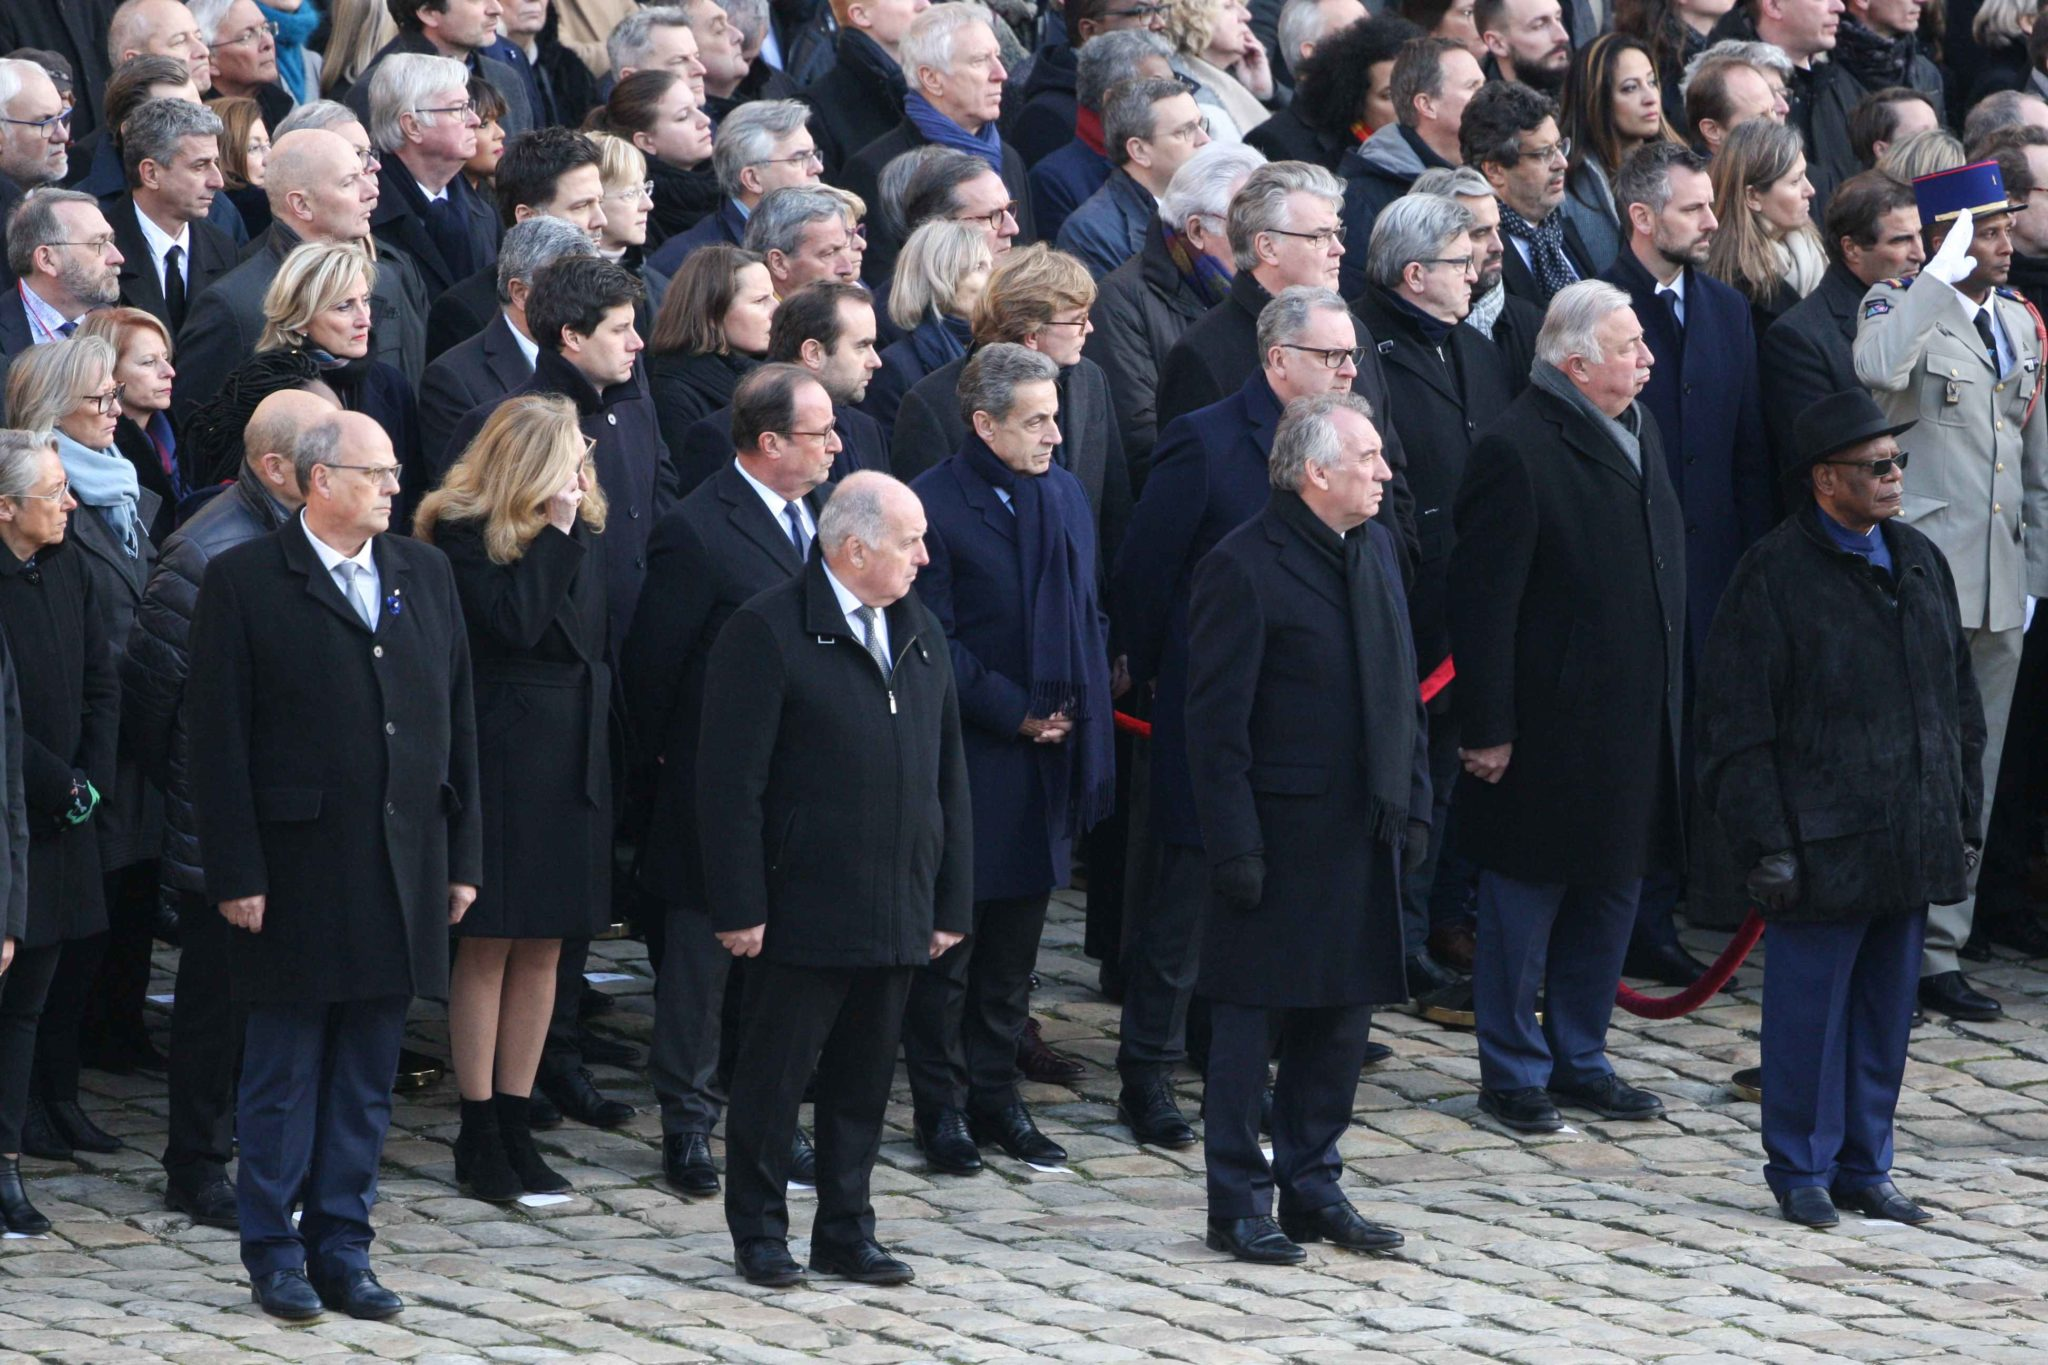 (2nd row from C to L) French former president Nicolas Sarkozy, French former president Francois Hollande and French Justice Minister Nicole Belloubet attend a tribute ceremony on December 2, 2019 at the Invalides monument, in Paris, for the 13 French soldi